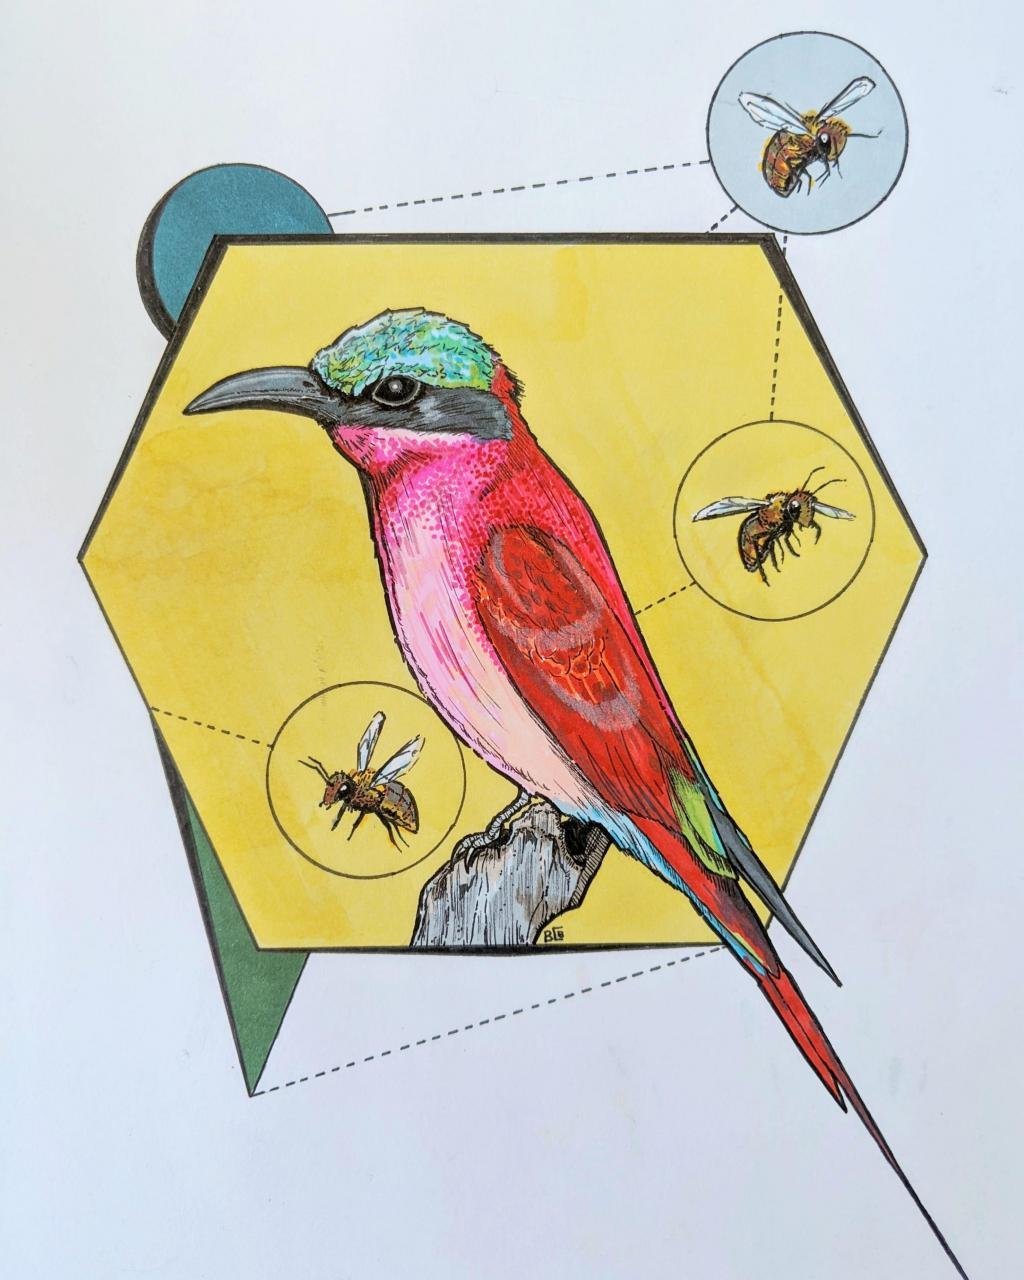 The northern carmine bee-eater. Friend of mine is a huge bird fanatic and asked me to design a tattoo of this crimson beauty. More on Instagram @DoctorGrumble.